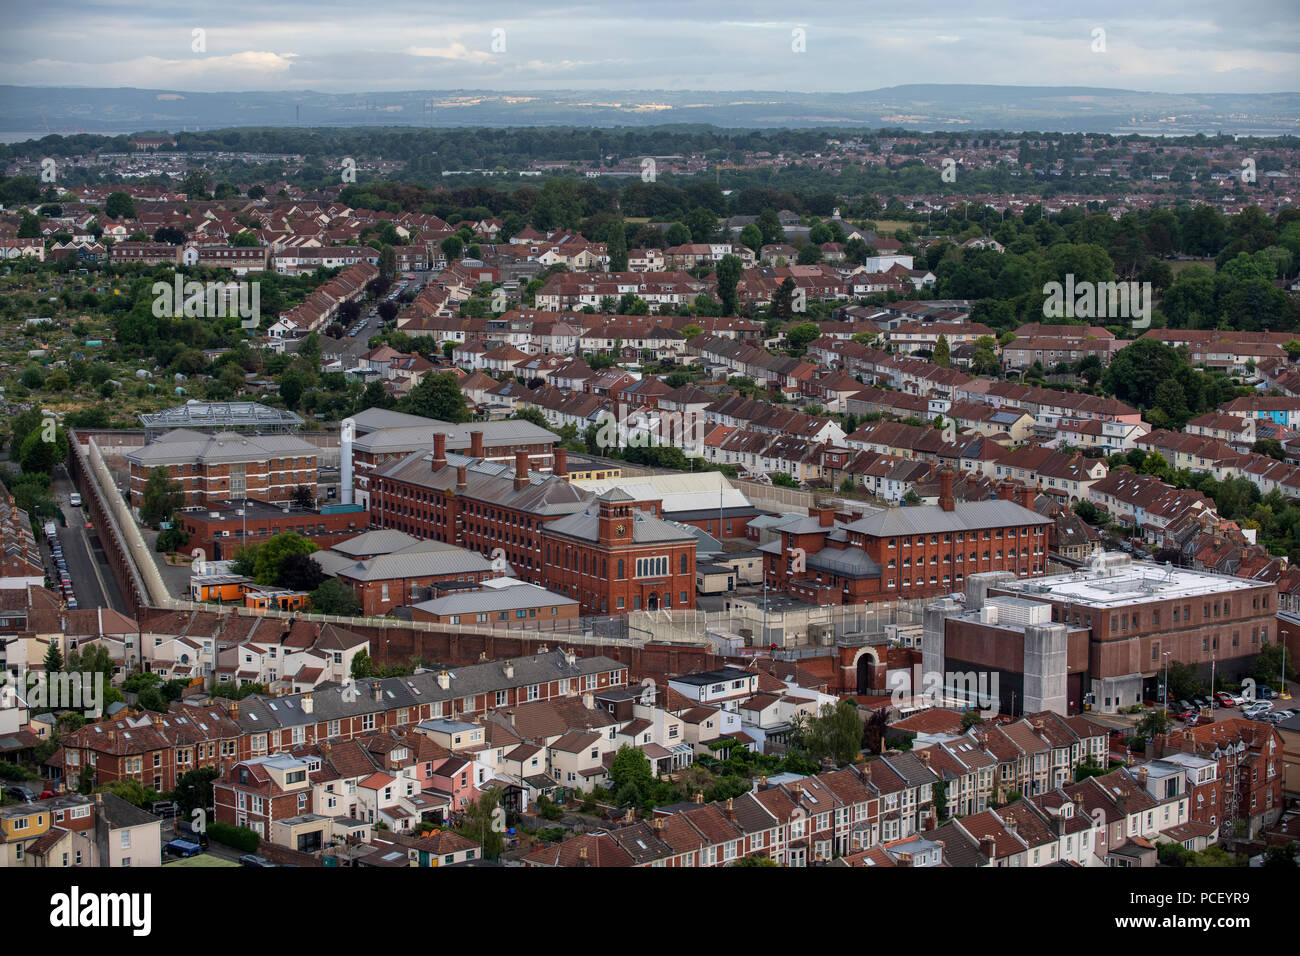 An aerial view of HM Prison Bristol. A category B men's prison, located in the Horfield area of Bristol. - Stock Image